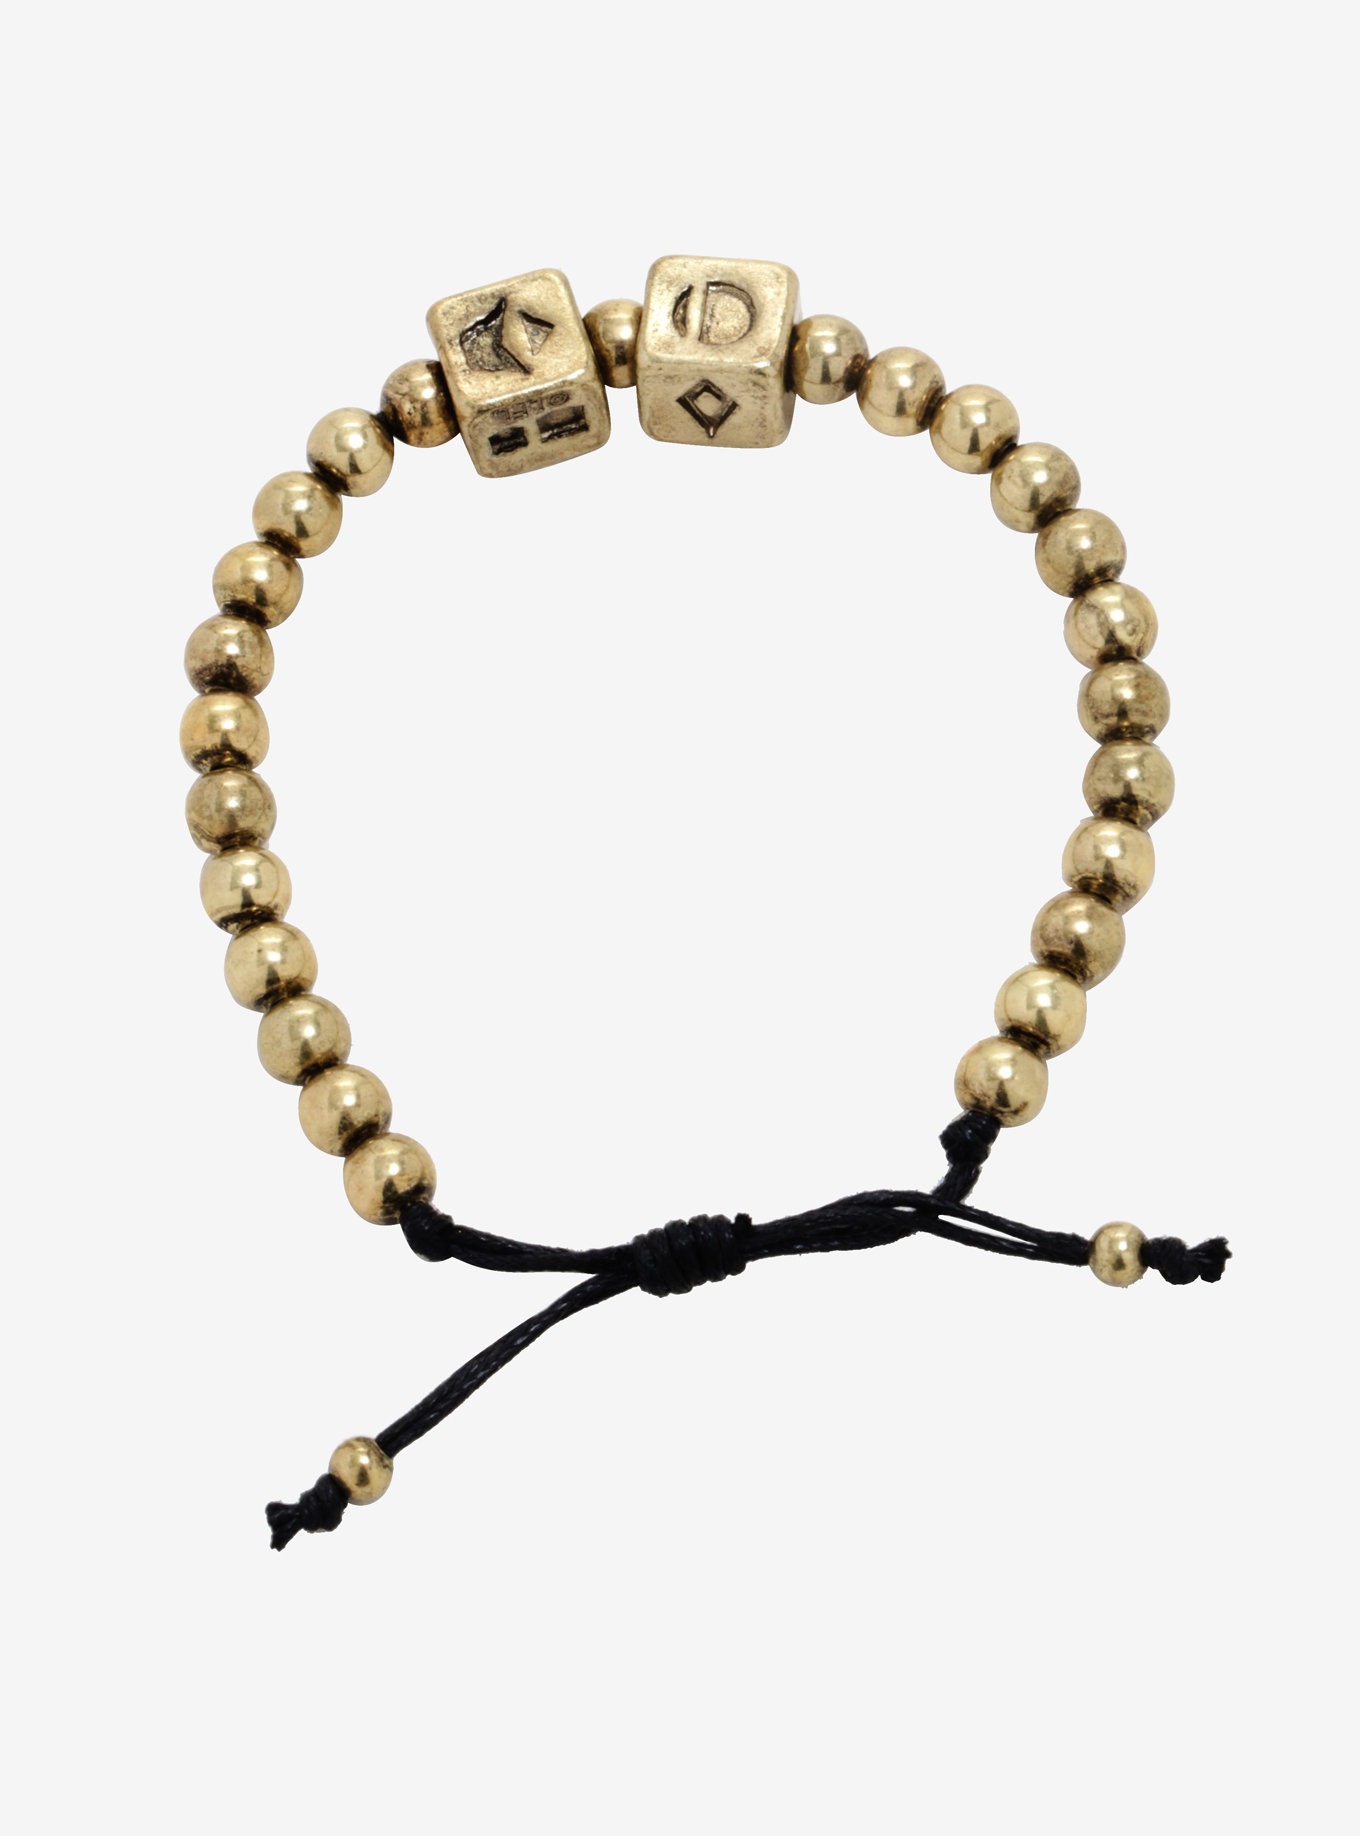 Star Wars Solo A Star Wars Story Dice Beaded Bracelet available exclusively at Box Lunch